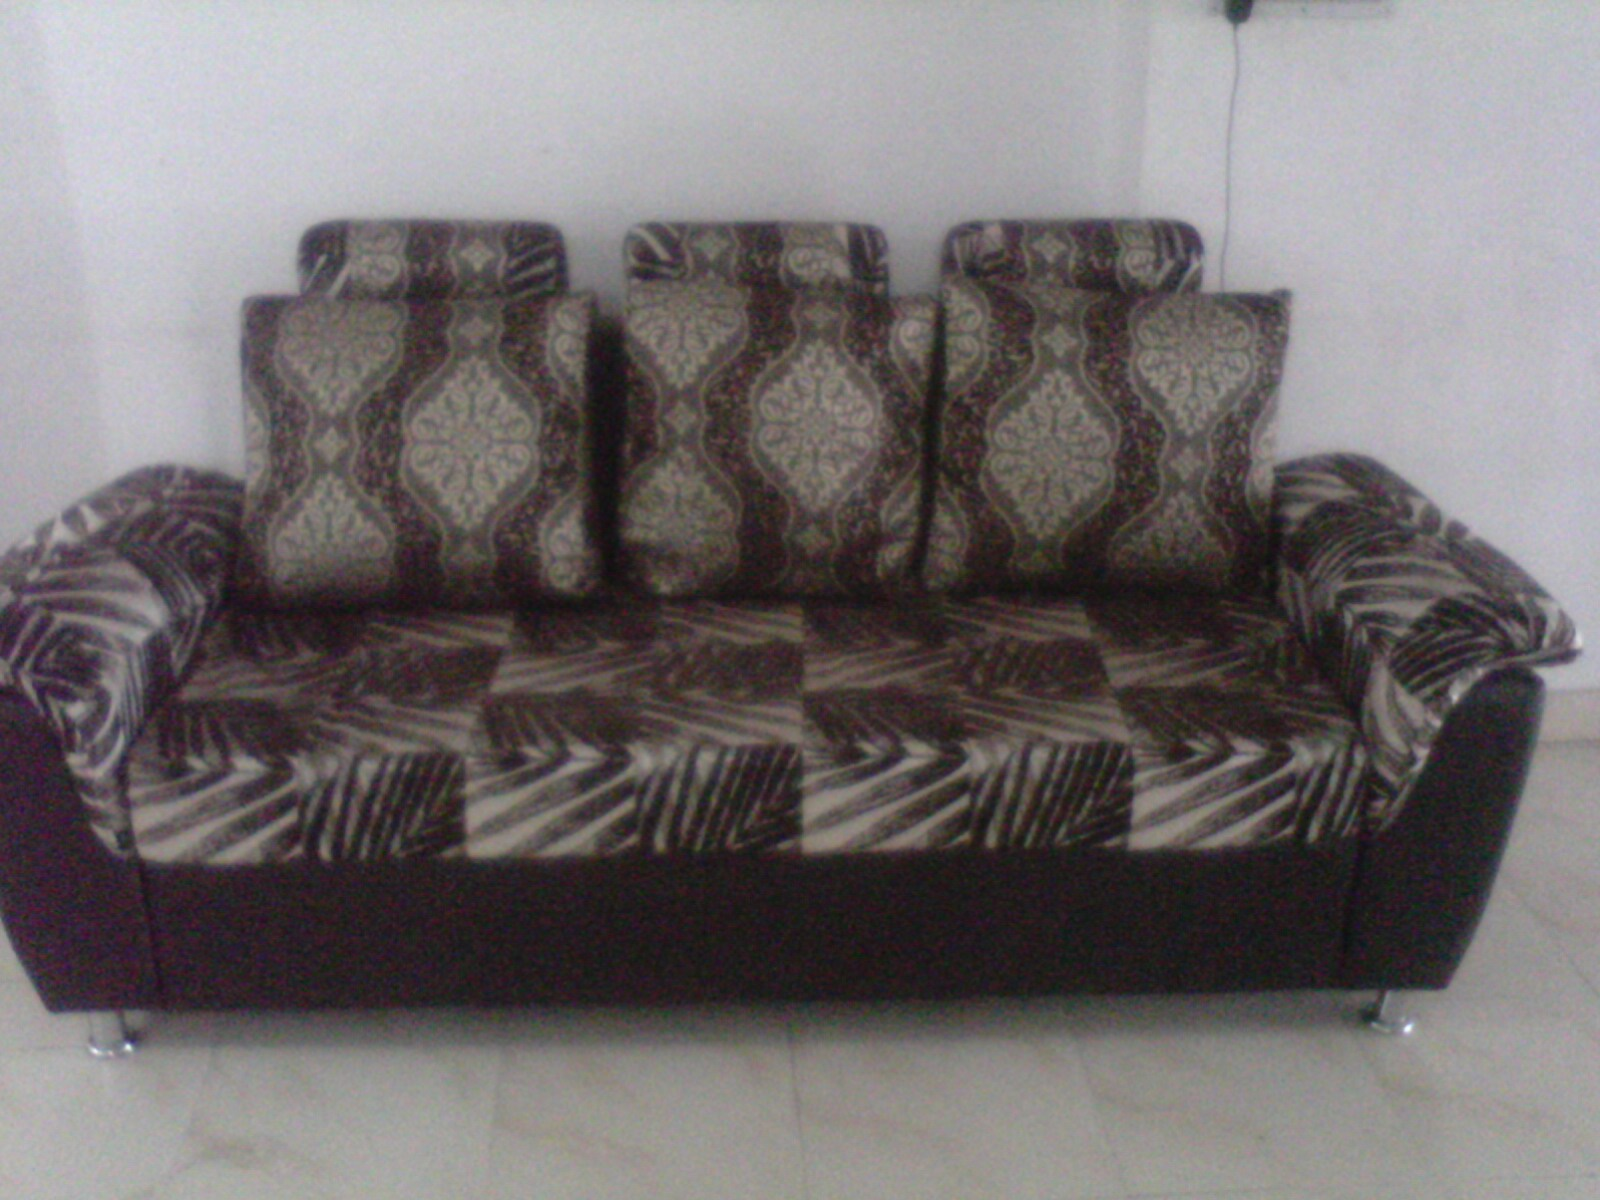 Union Furniture In Hyderabad Secunderabad Latest